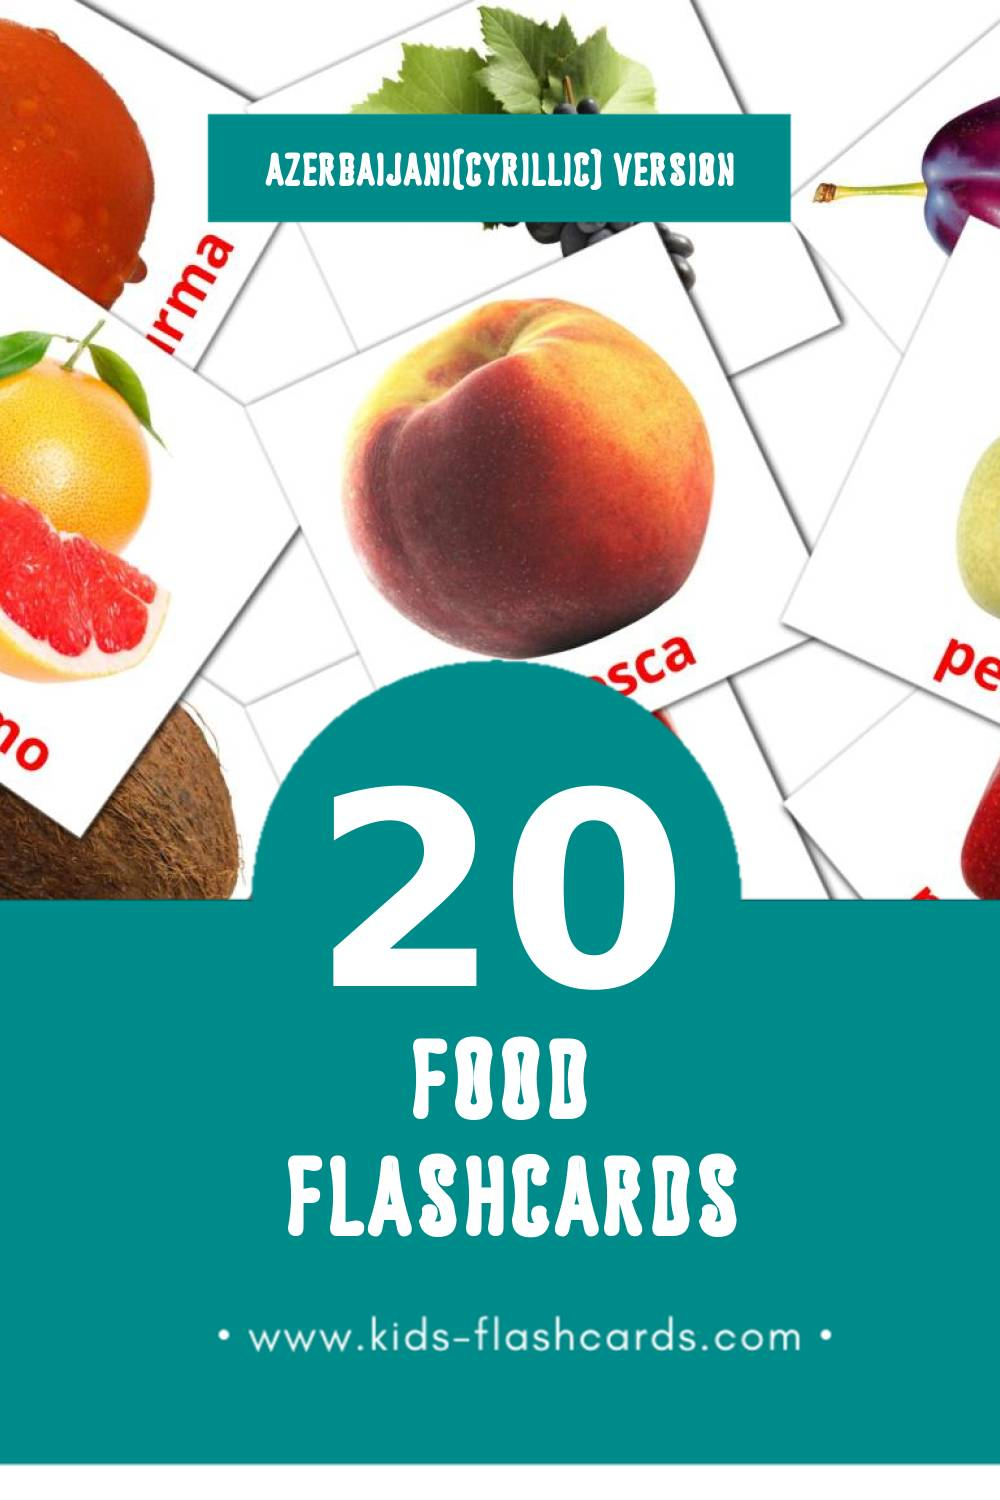 Visual 2 Flashcards for Toddlers (20 cards in Azerbaijani(cyrillic))